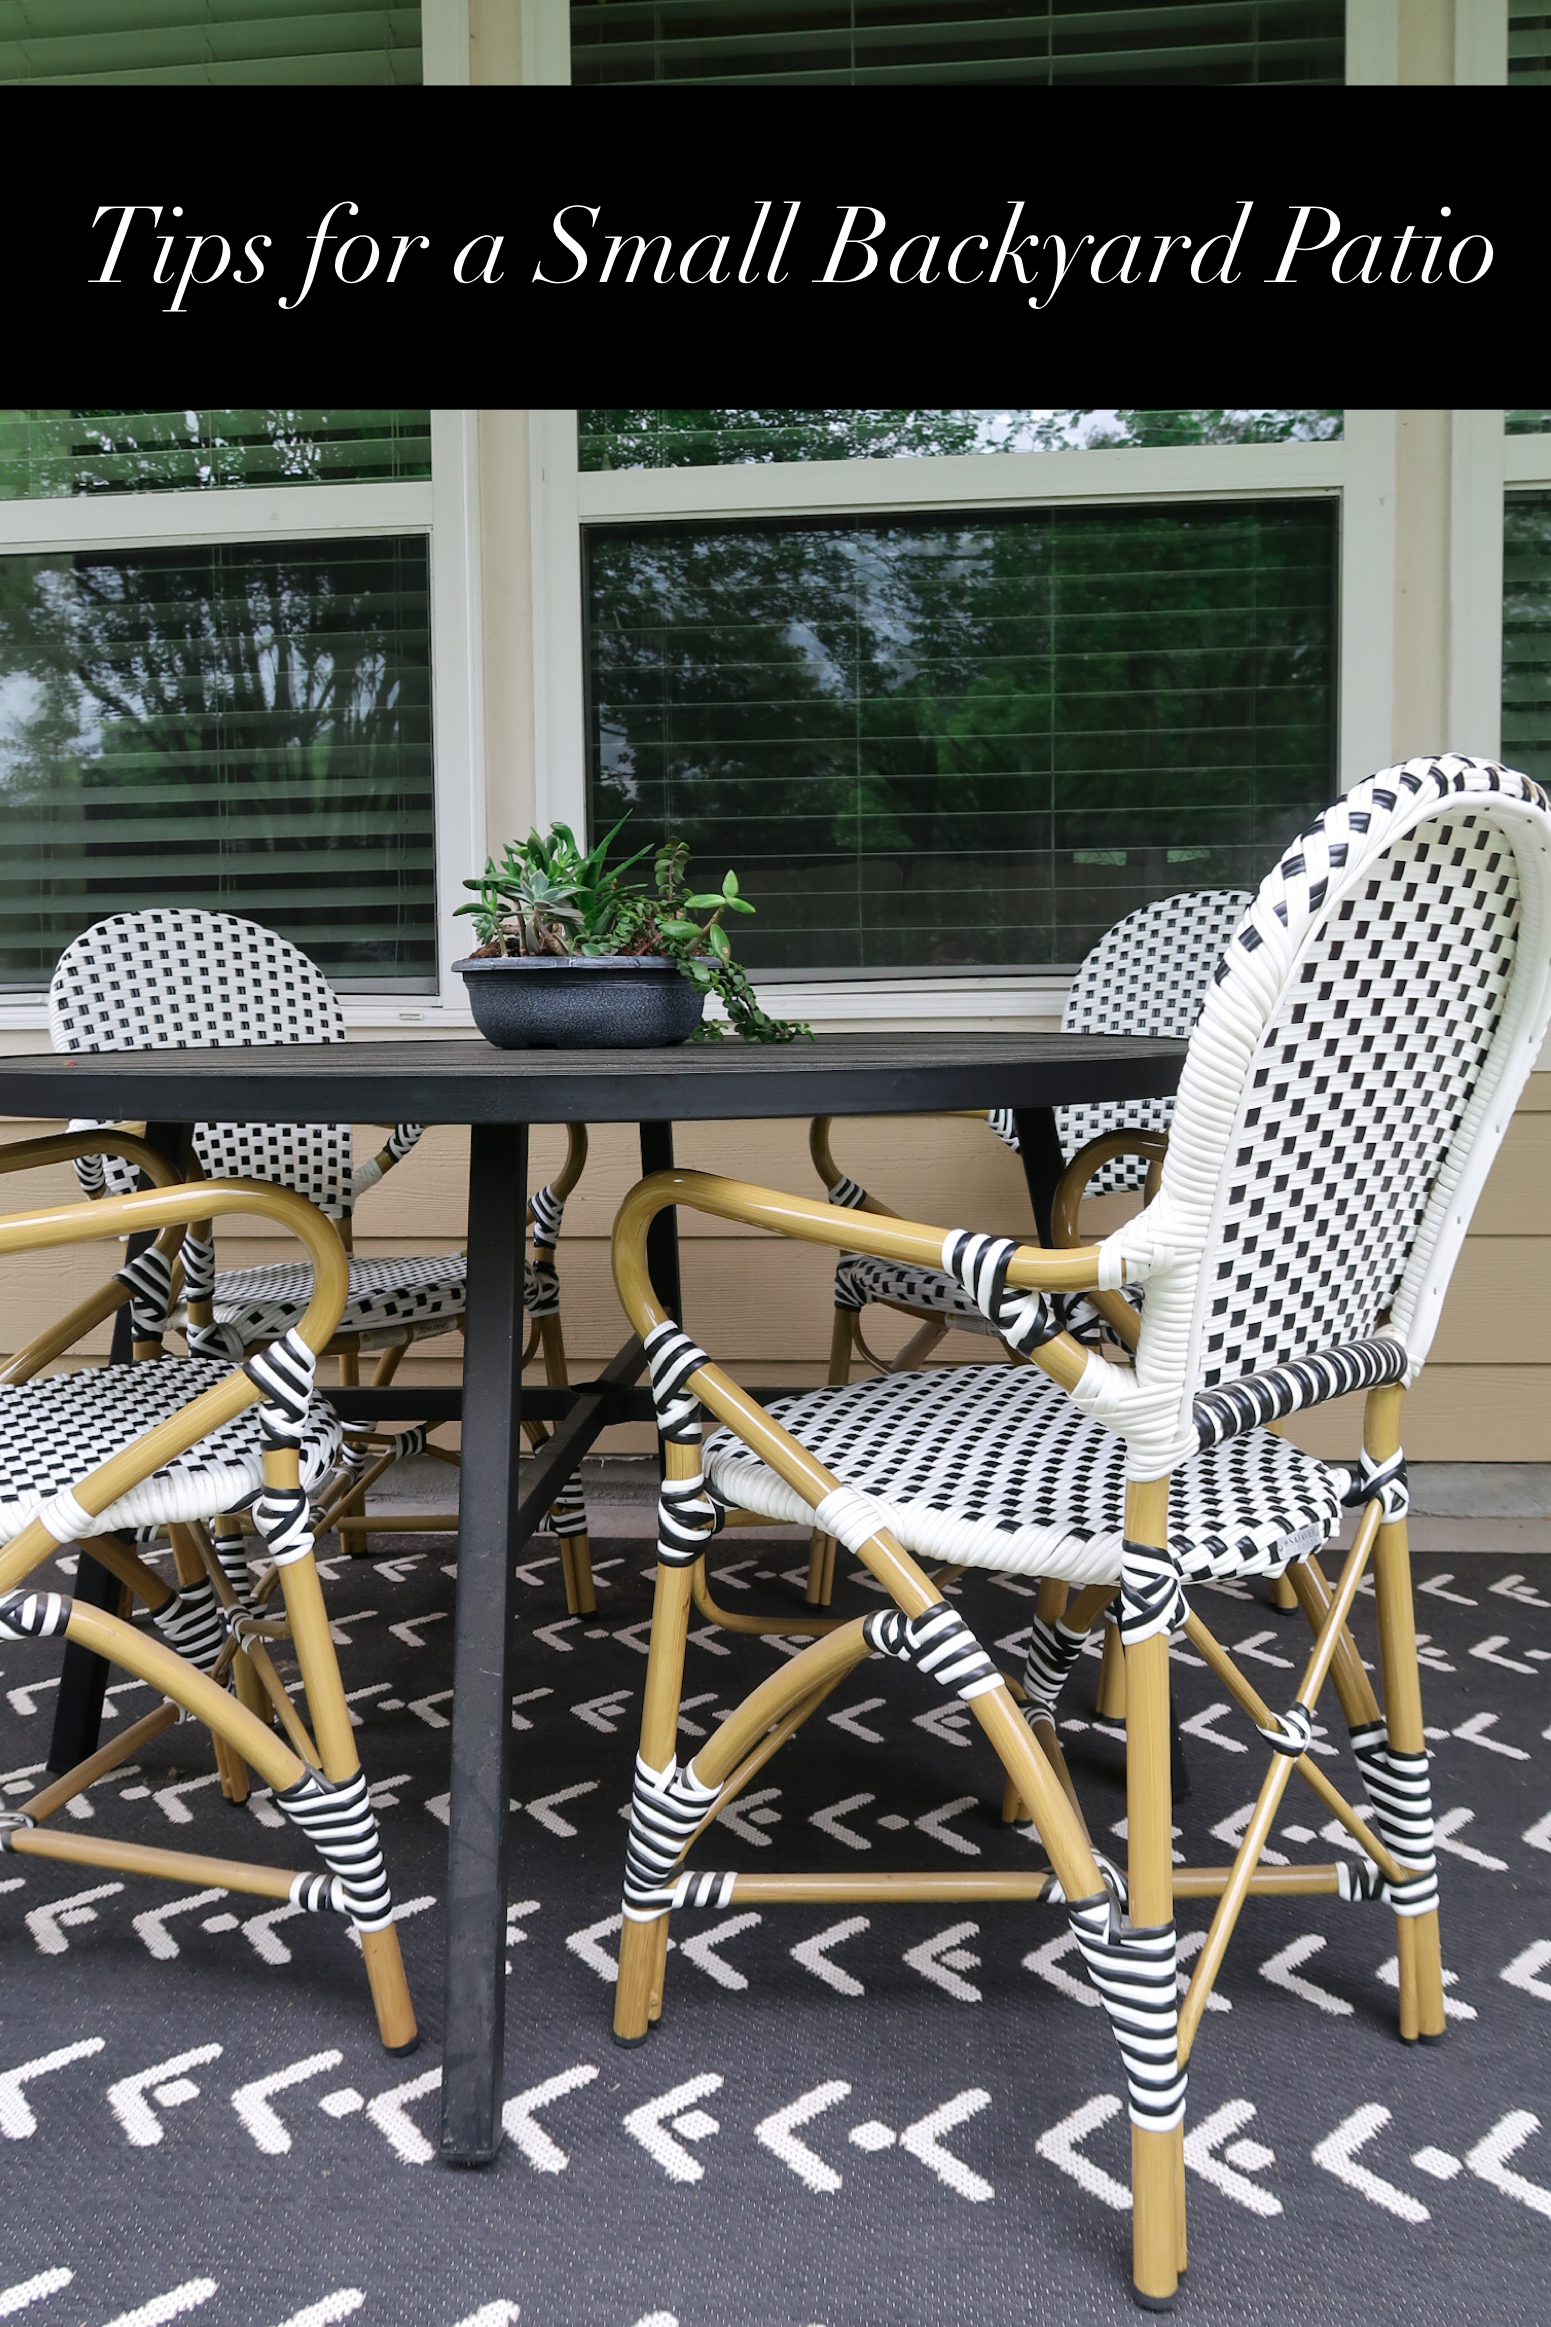 Tips for a Small Backyard & Patio